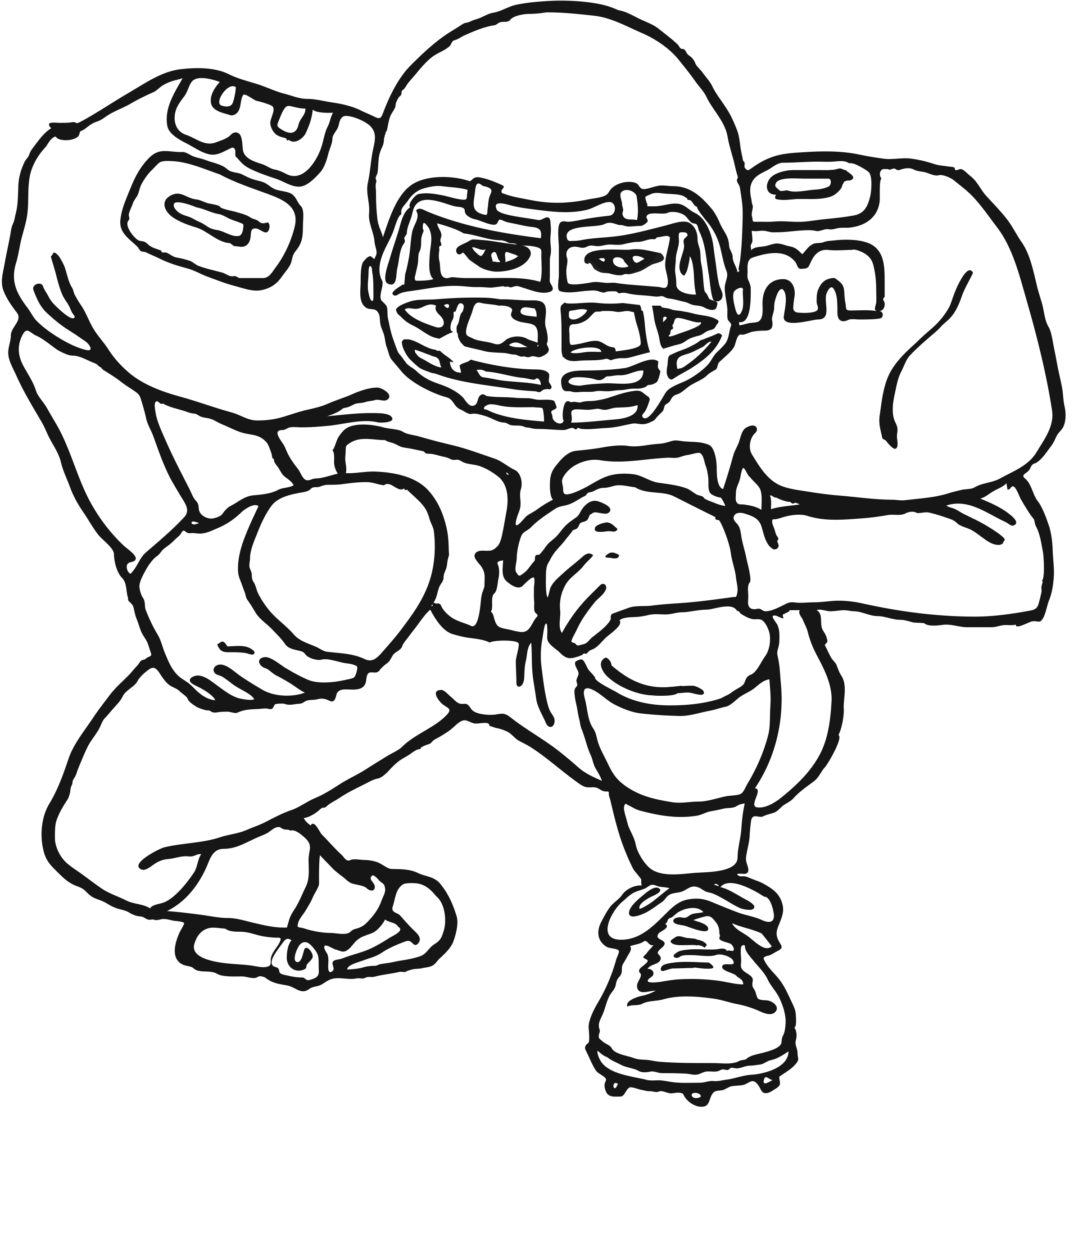 Super Bowl 2020 Coloring Pages Coloring Home